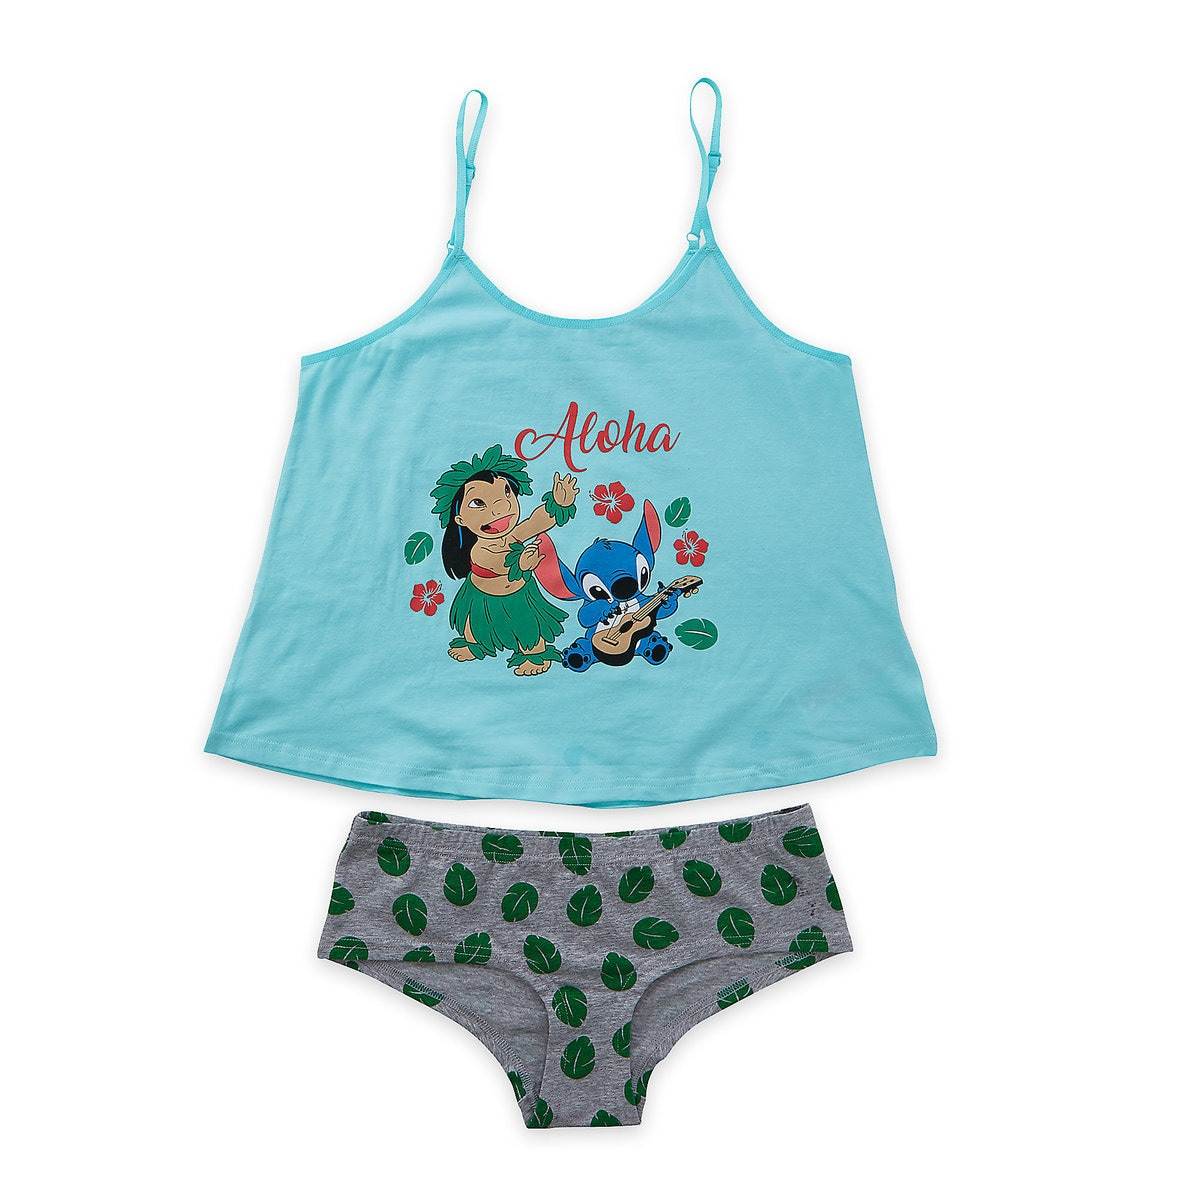 5f6755bf89c87 Product Image of Lilo & Stitch Cami and Brief Set for Women # 2